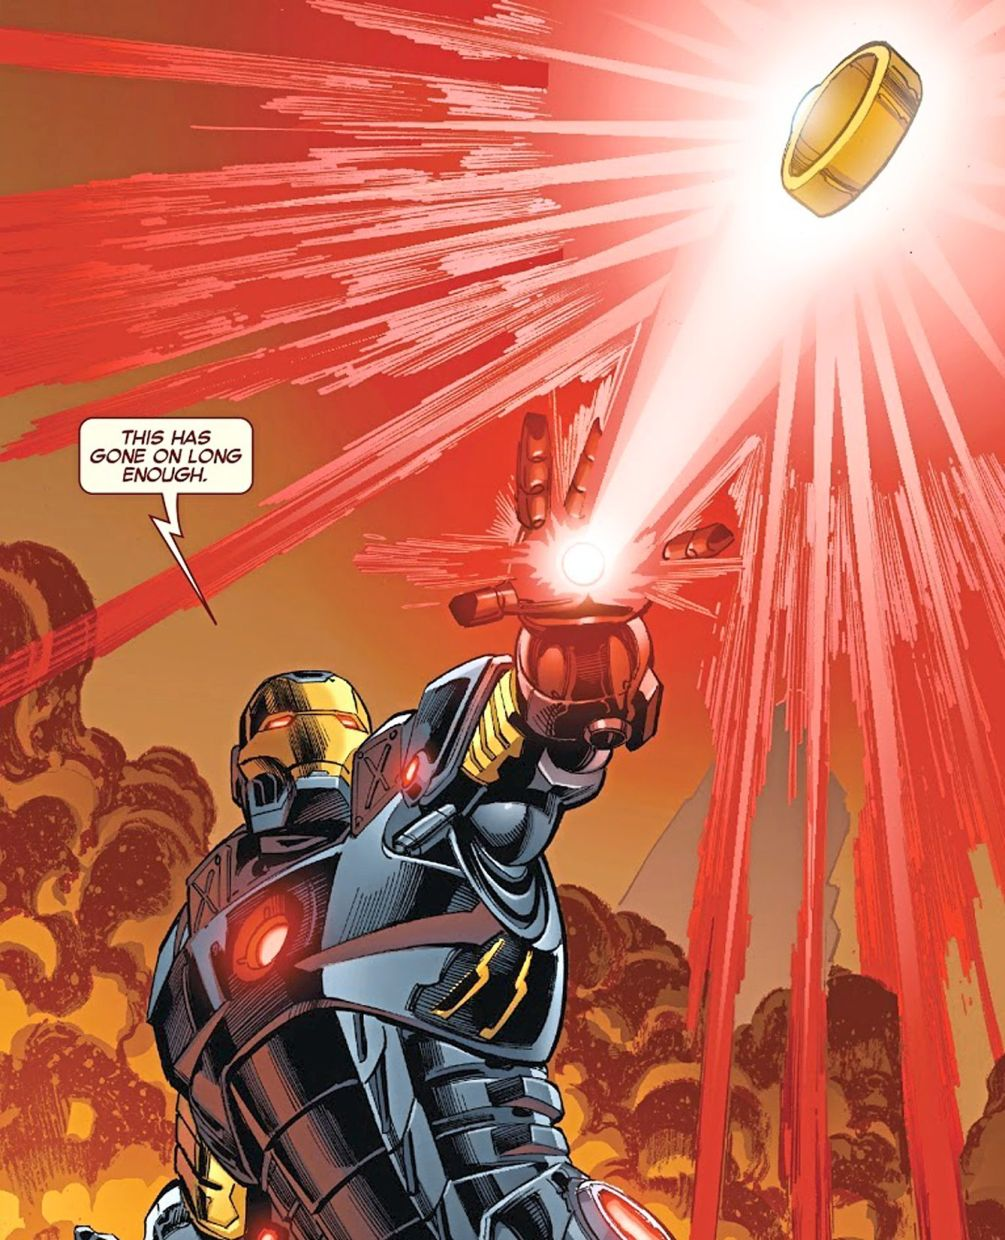 The Mandarin's Ten Rings have caused Iron Man more than enough trouble over the years.